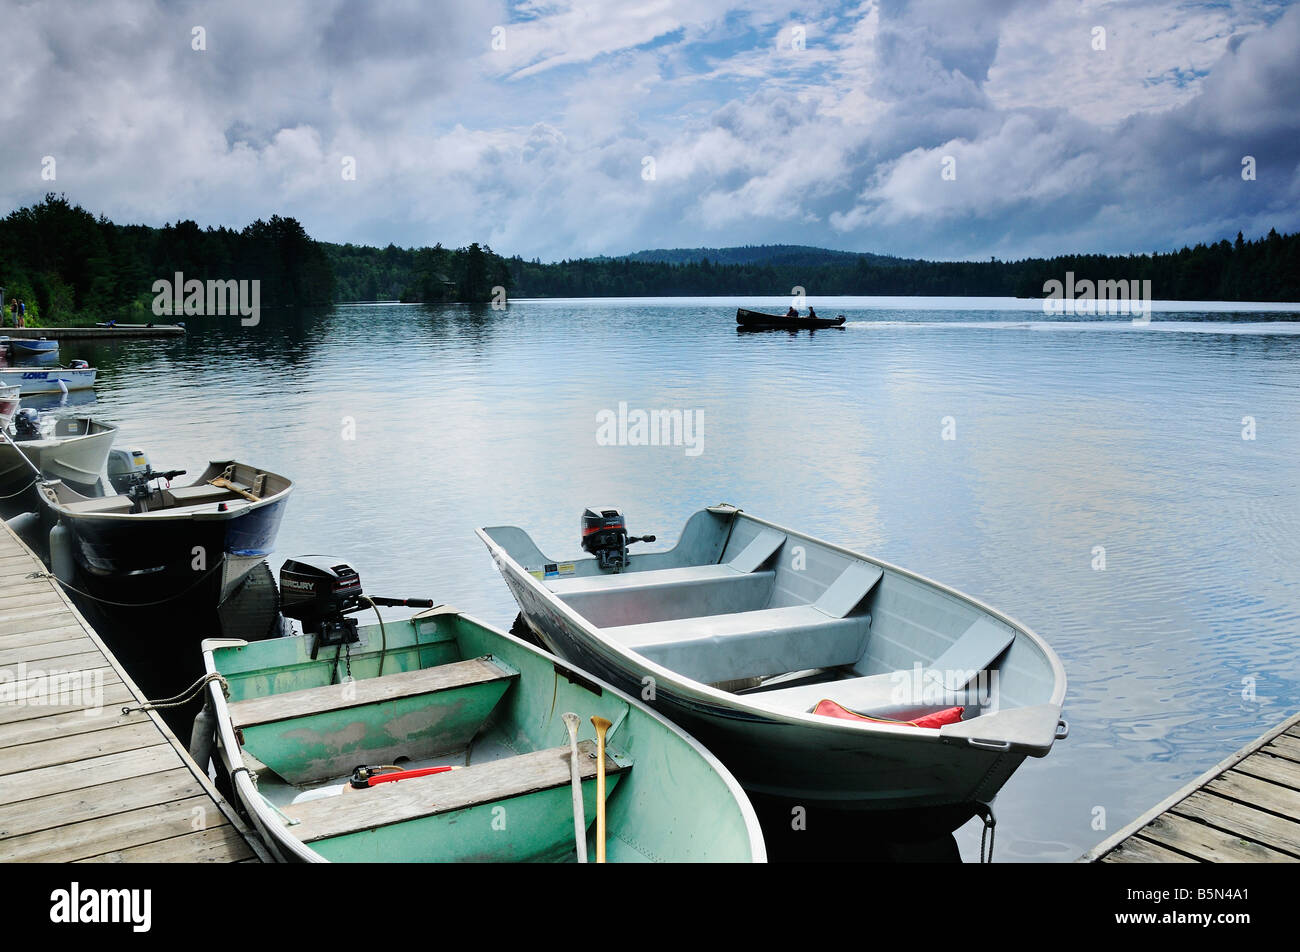 Boats anchored in a lake in Algonquin Provincial Park Ontario Canada - Stock Image